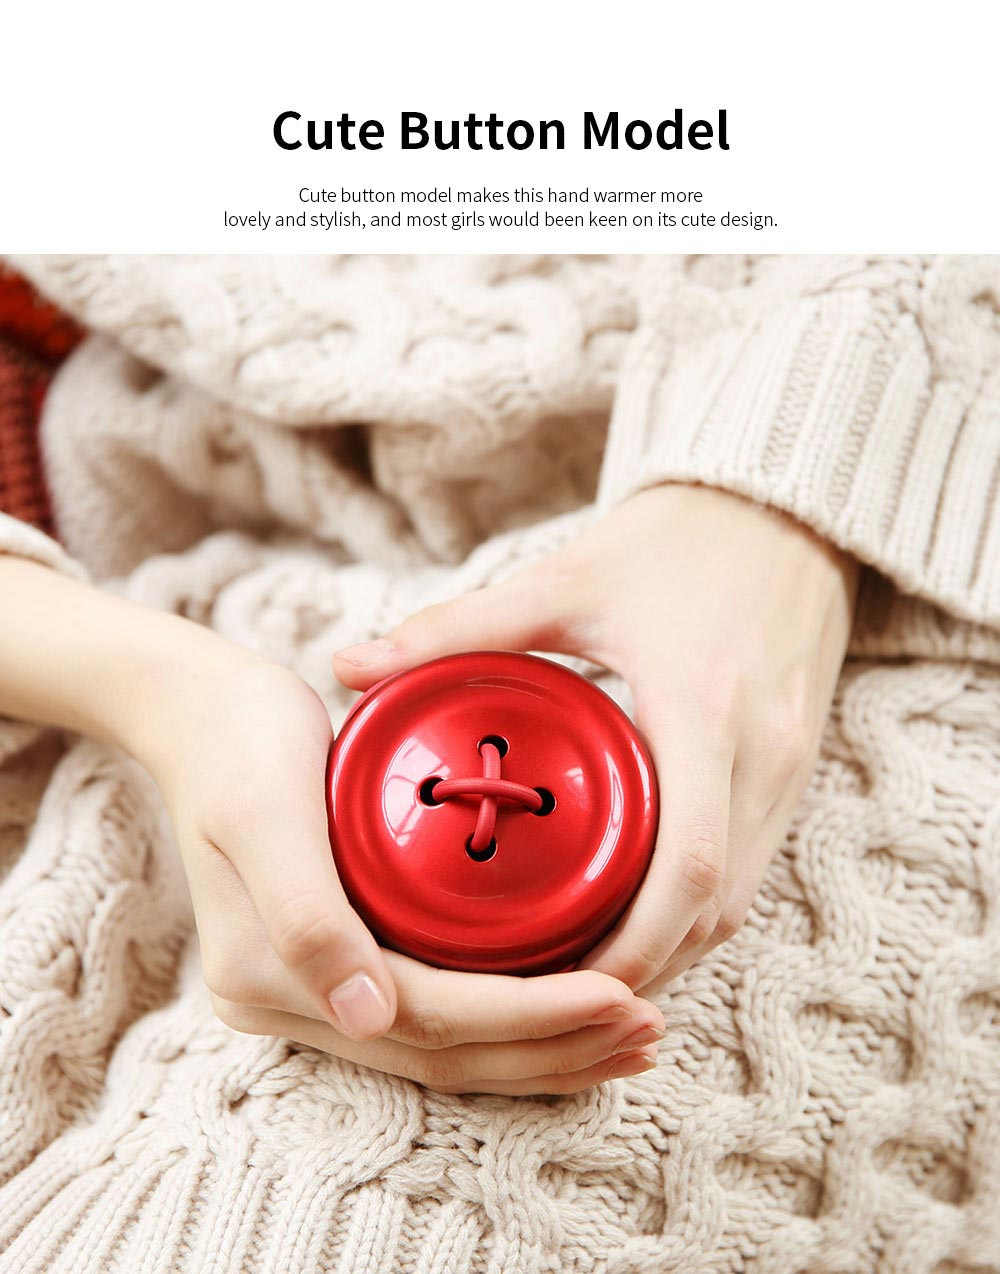 Portable Creative Cute Button Model Electronic Hand Warmer Power Bank Intelligent Temperature Control Quick Heating 1